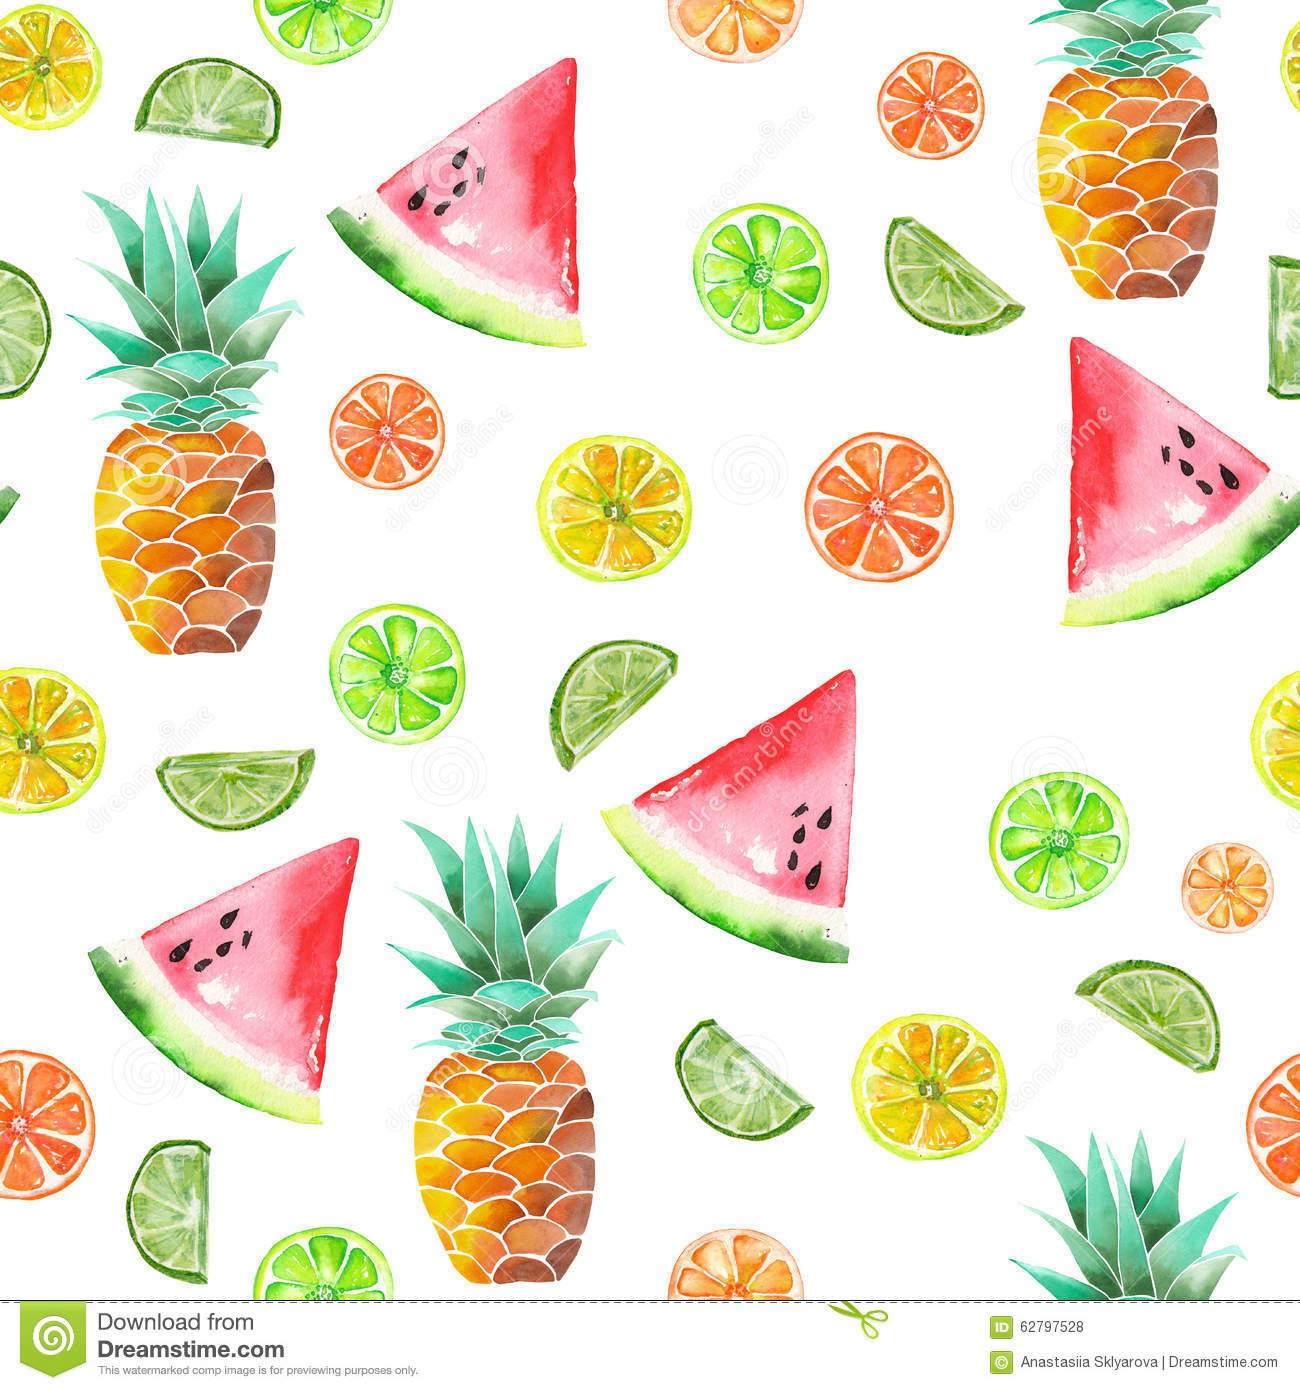 Tropical print background tumblr tropical patterns related keywords - Image Gallery Lime Pineapple Clip Art